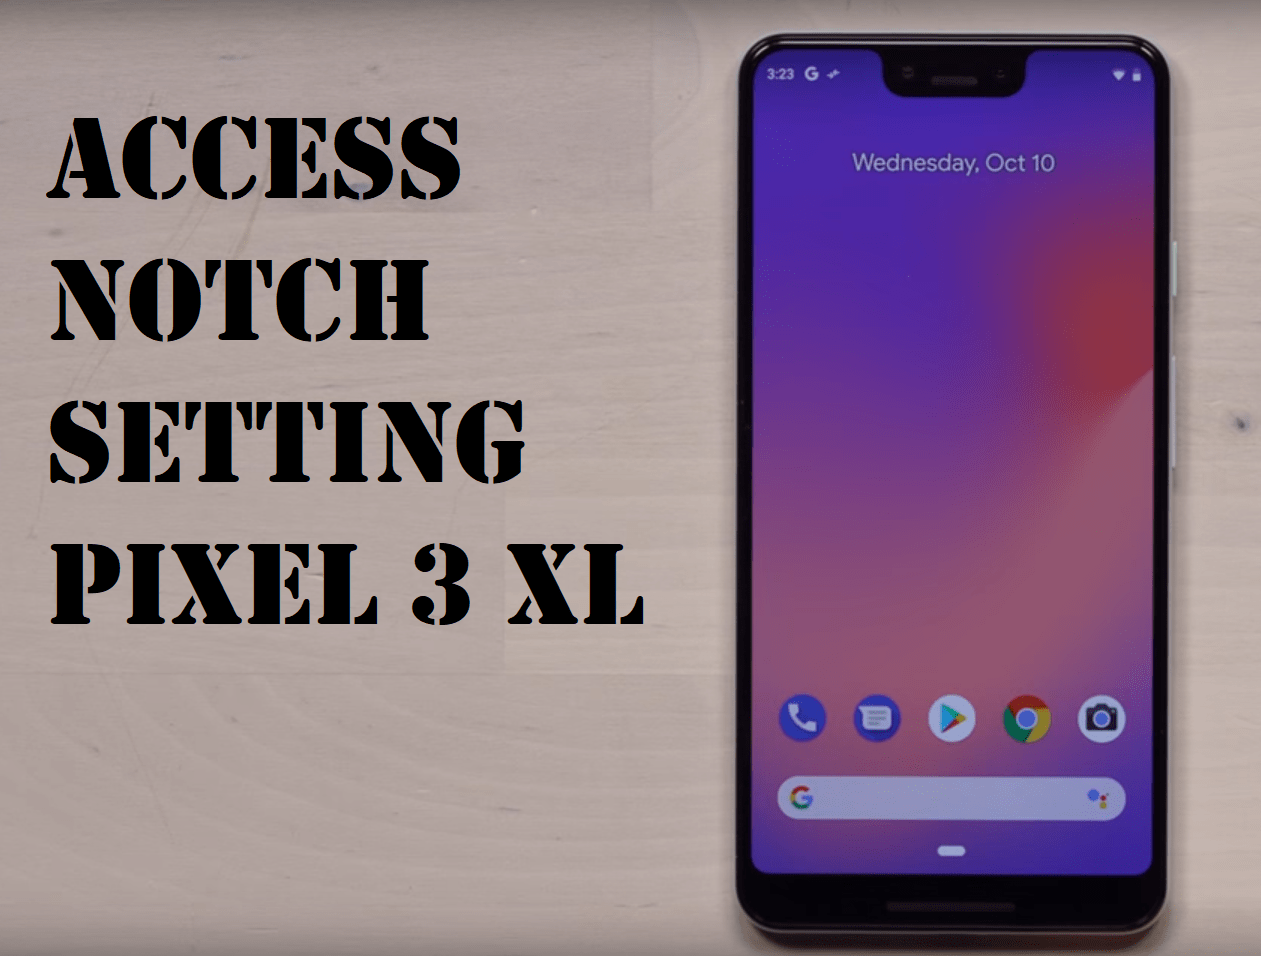 How to Access Notch Settings on the Google Pixel 3 XL